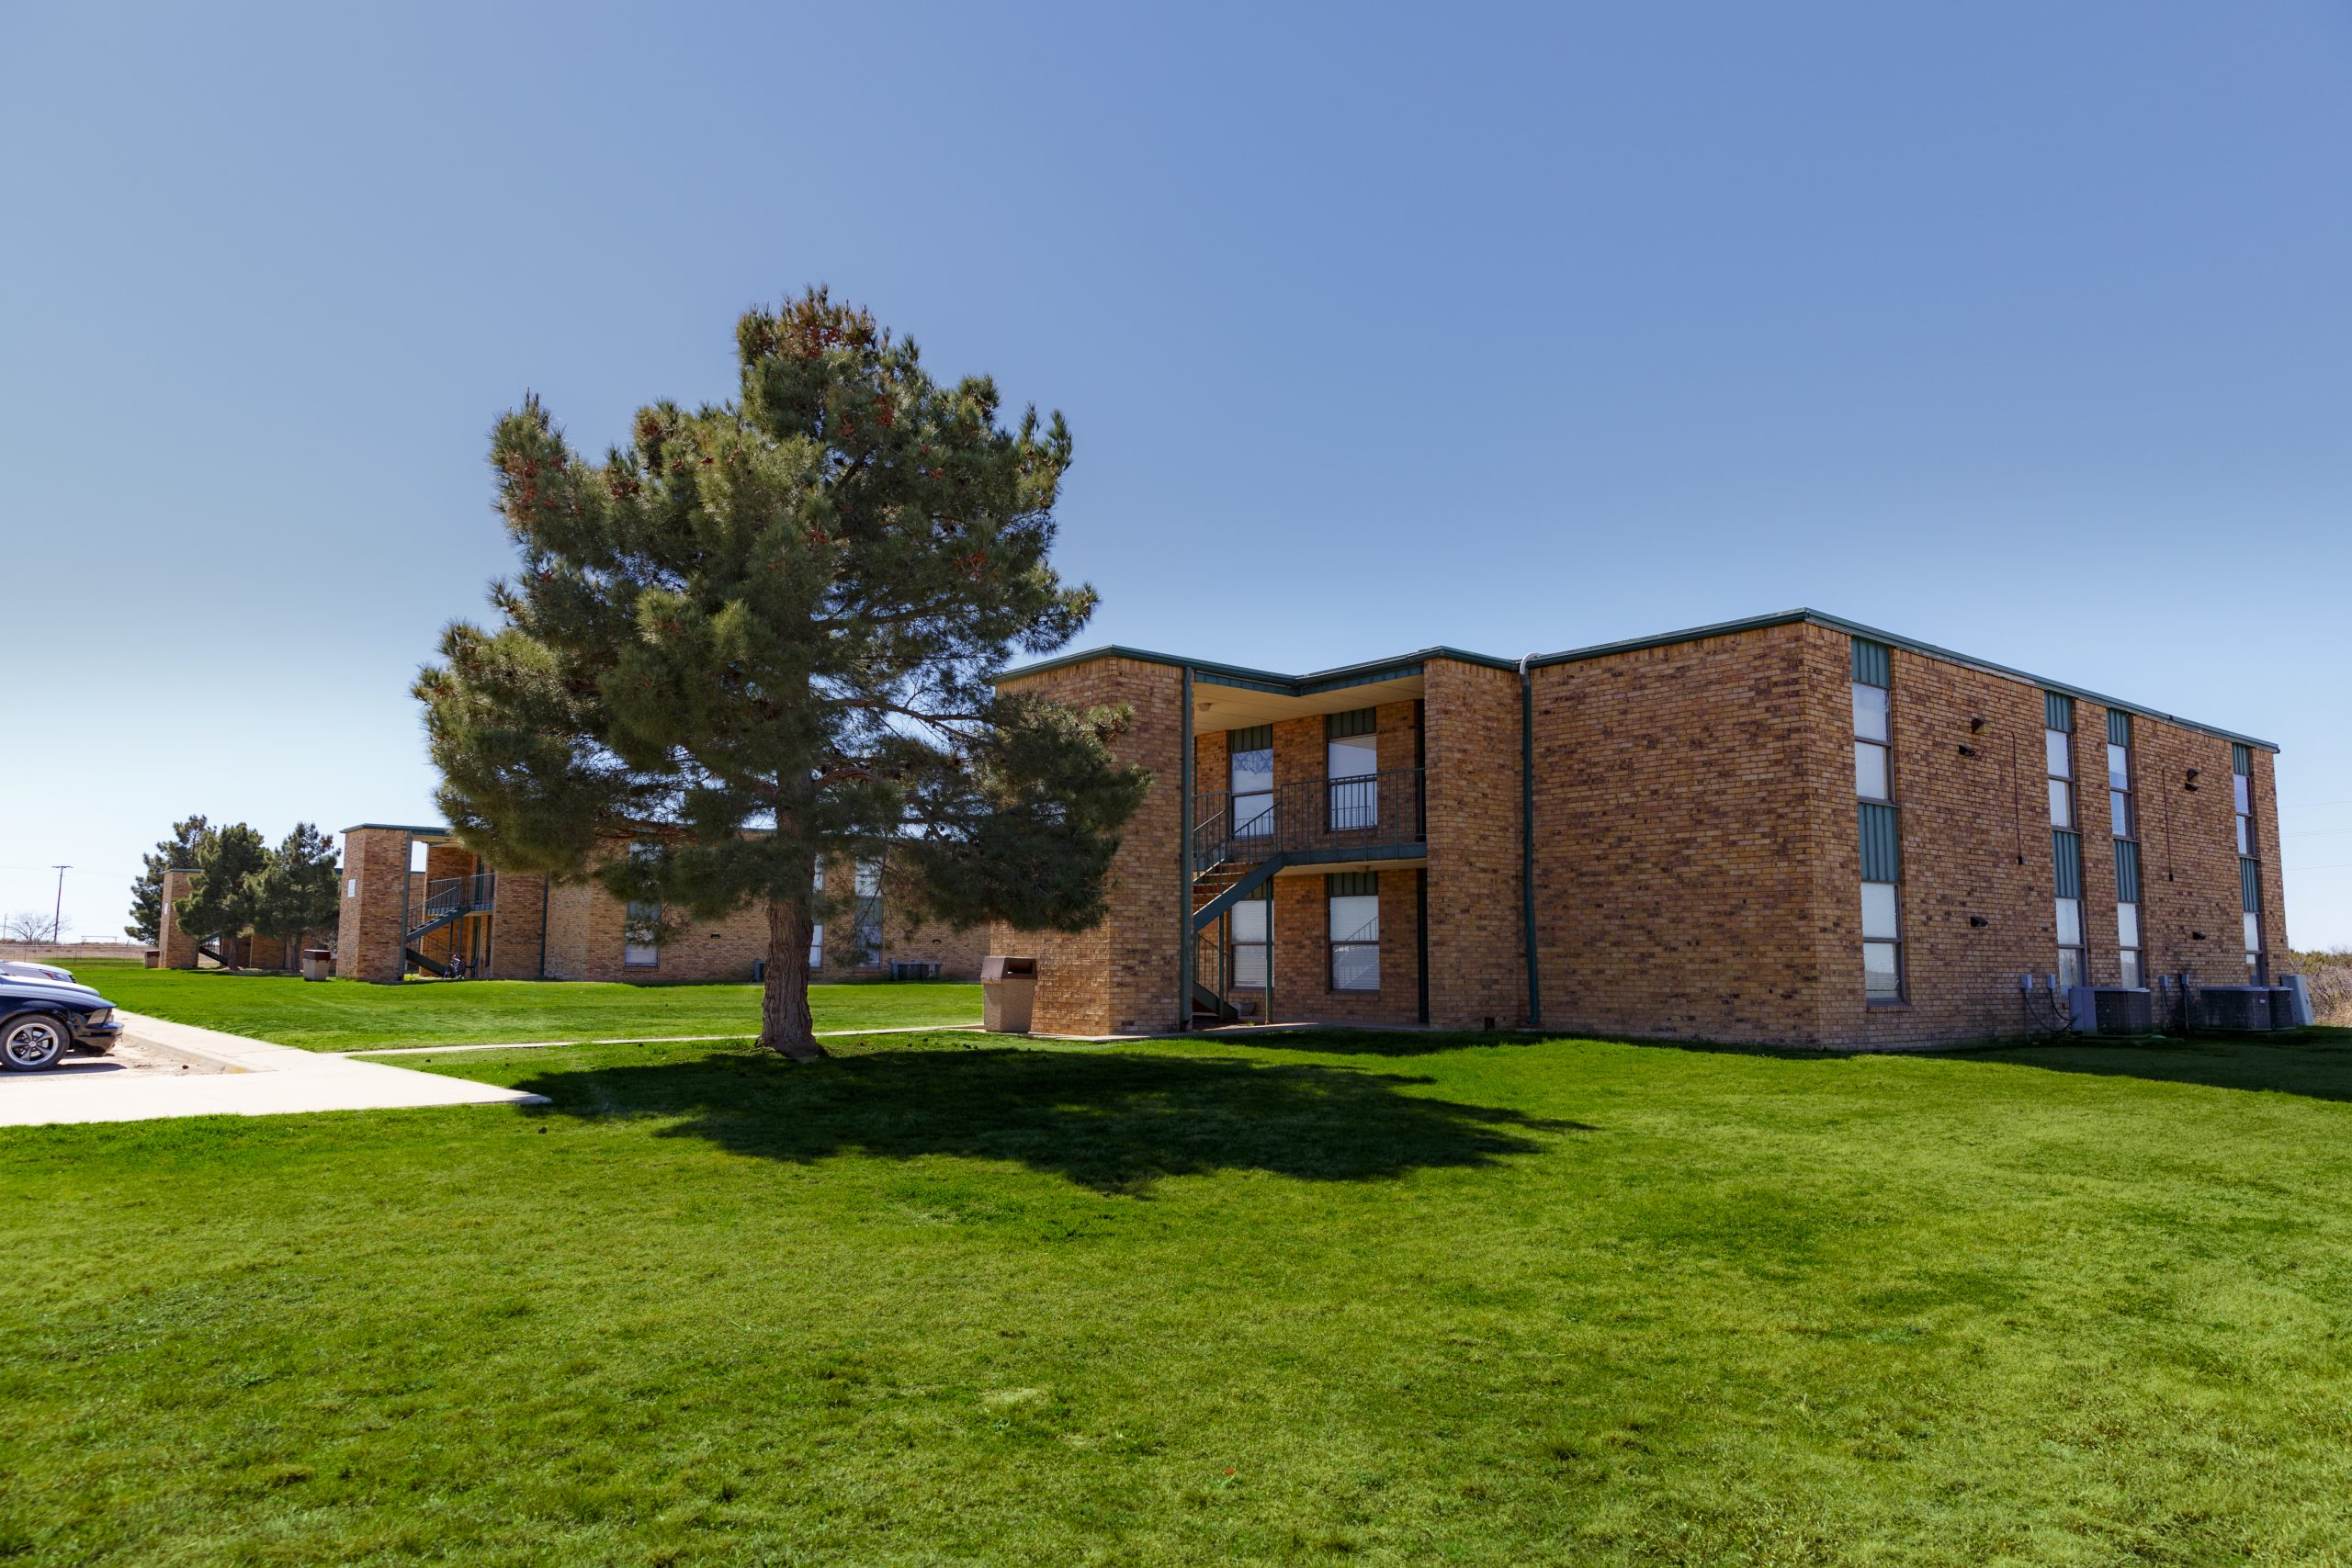 Sweetater dorms scaled - Campus Housing